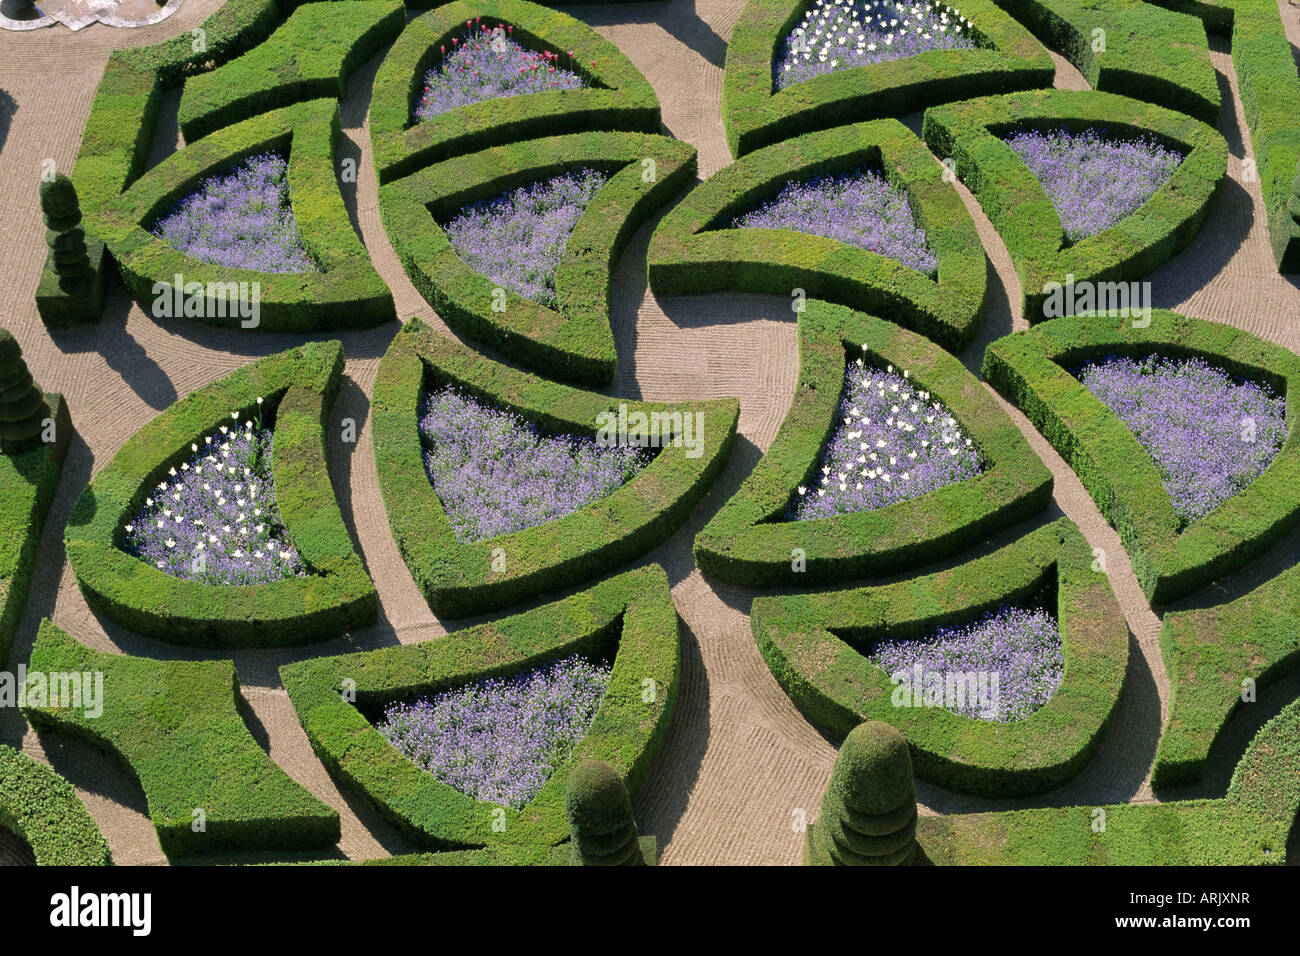 Formal gardens, Chateau of Villandry, Indre et Loire, Loire Valley, France, Europe - Stock Image